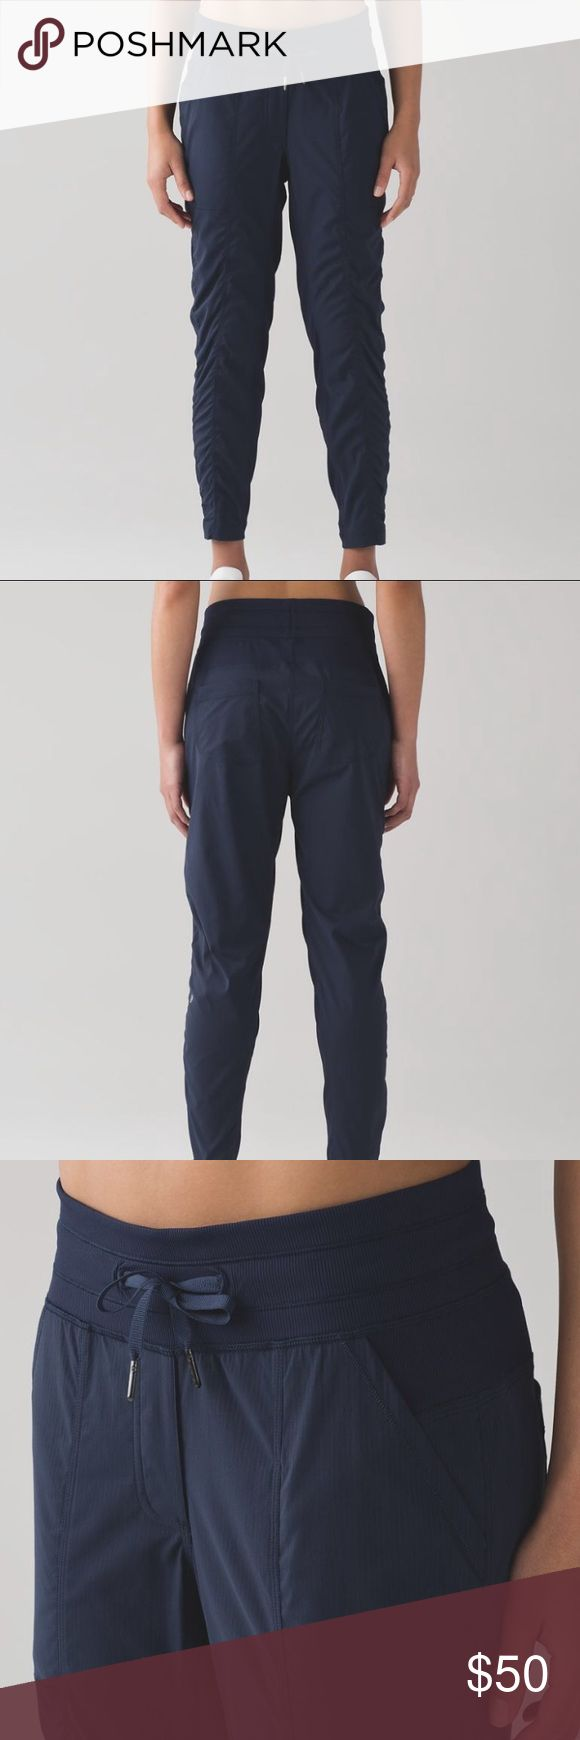 Lululemon Athletica Street to Studio Pant ll Lightweight pants for exercise or on the go. Unlined with 28'' inseam. Gently used. lululemon athletica Pants